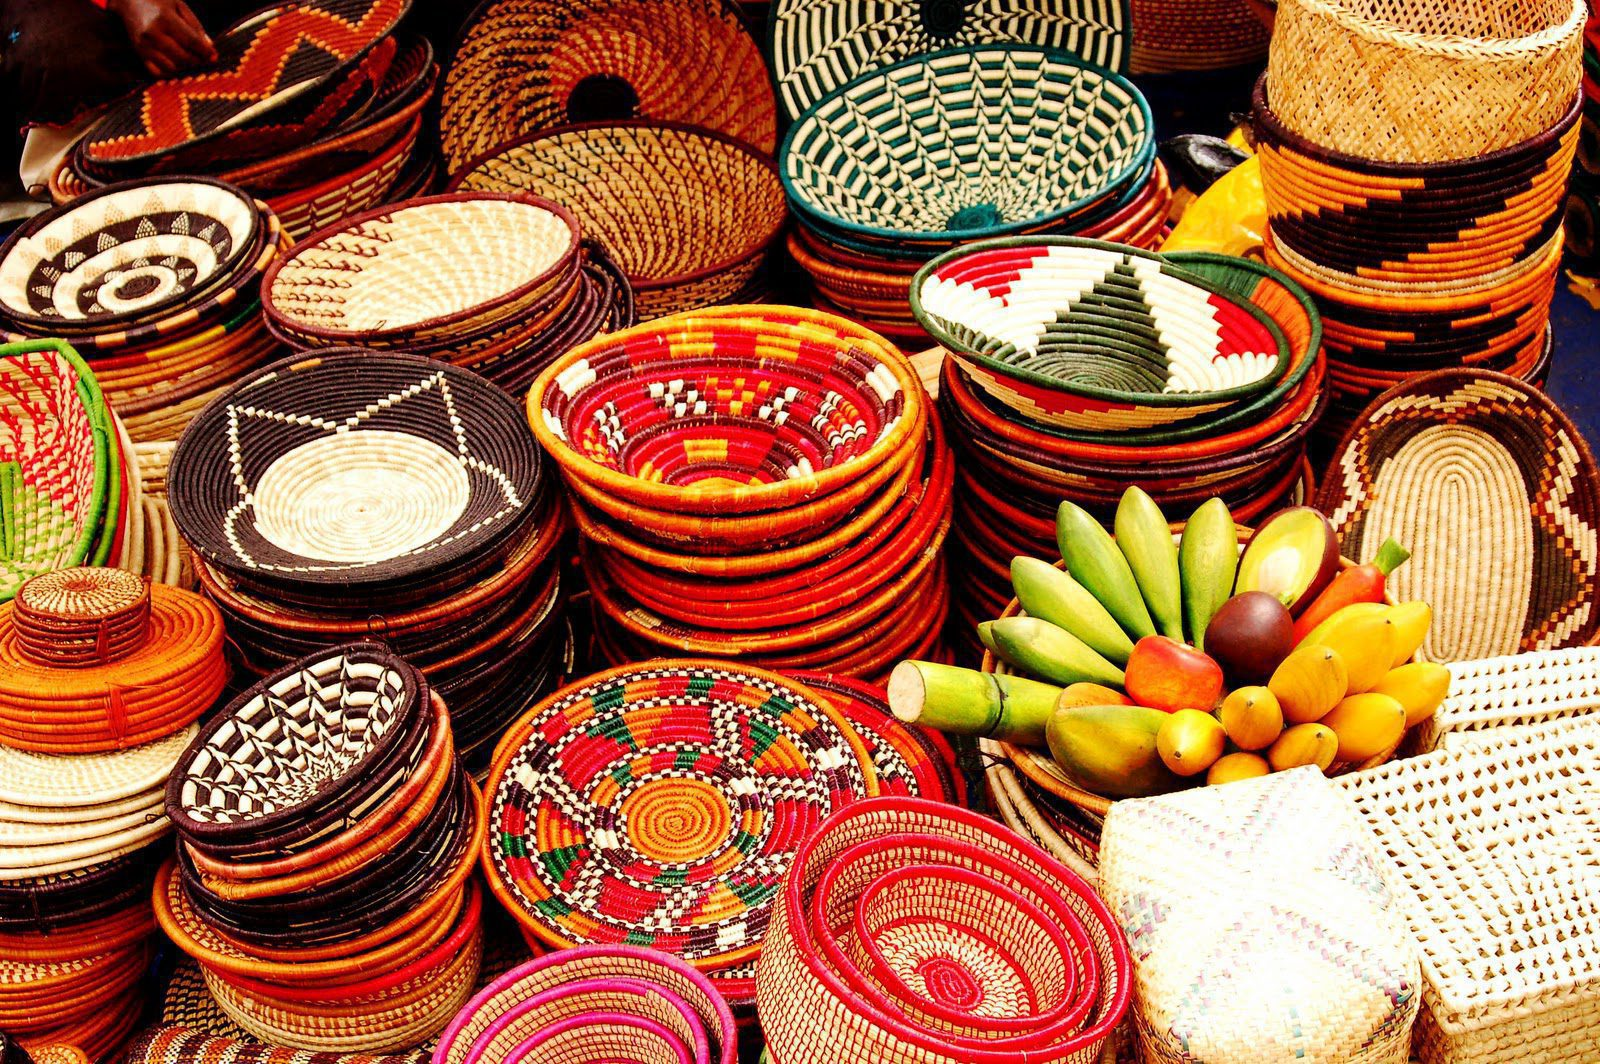 colorful baskets stacked up at a market